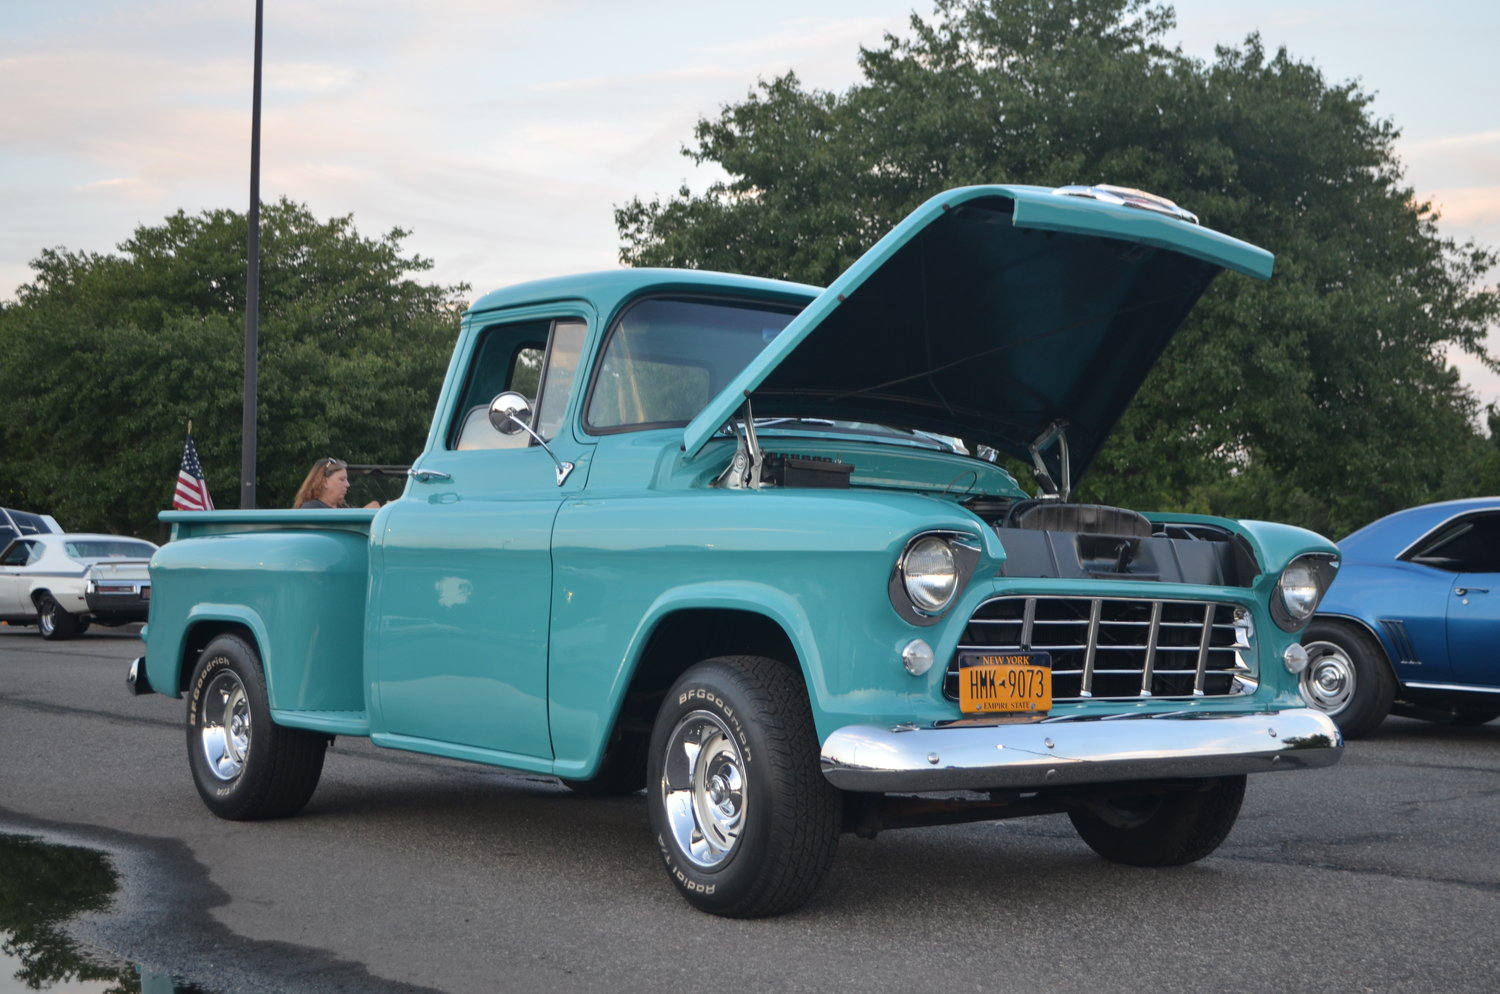 Dozens of people from around Nassau County showed off their cars at the new Baldwin/Rockville Centre Rotary Club car show on July 24.